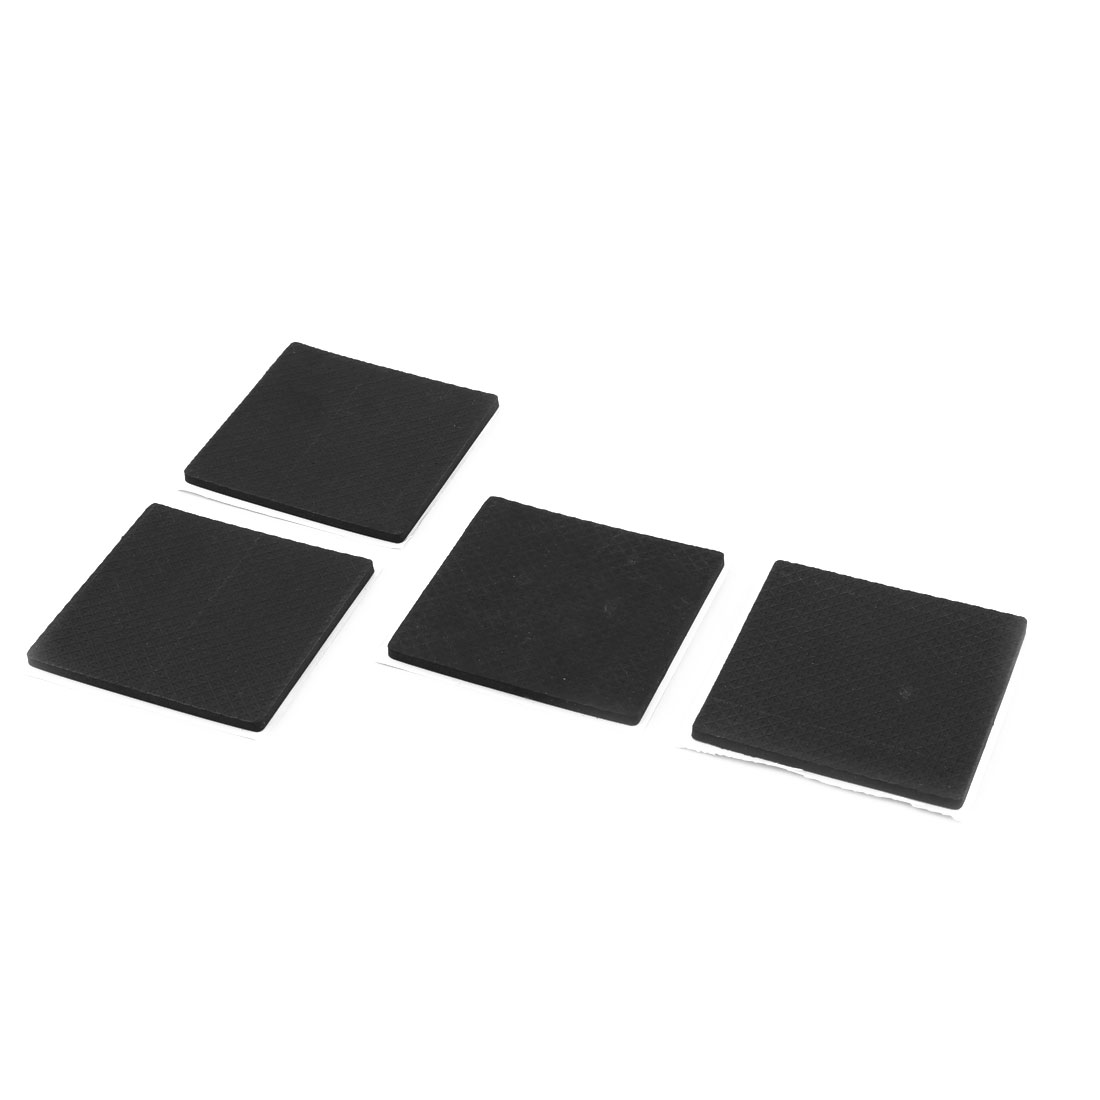 Home Square Shaped Table Chair Furniture Foot Protection Pad Black 4 Pcs